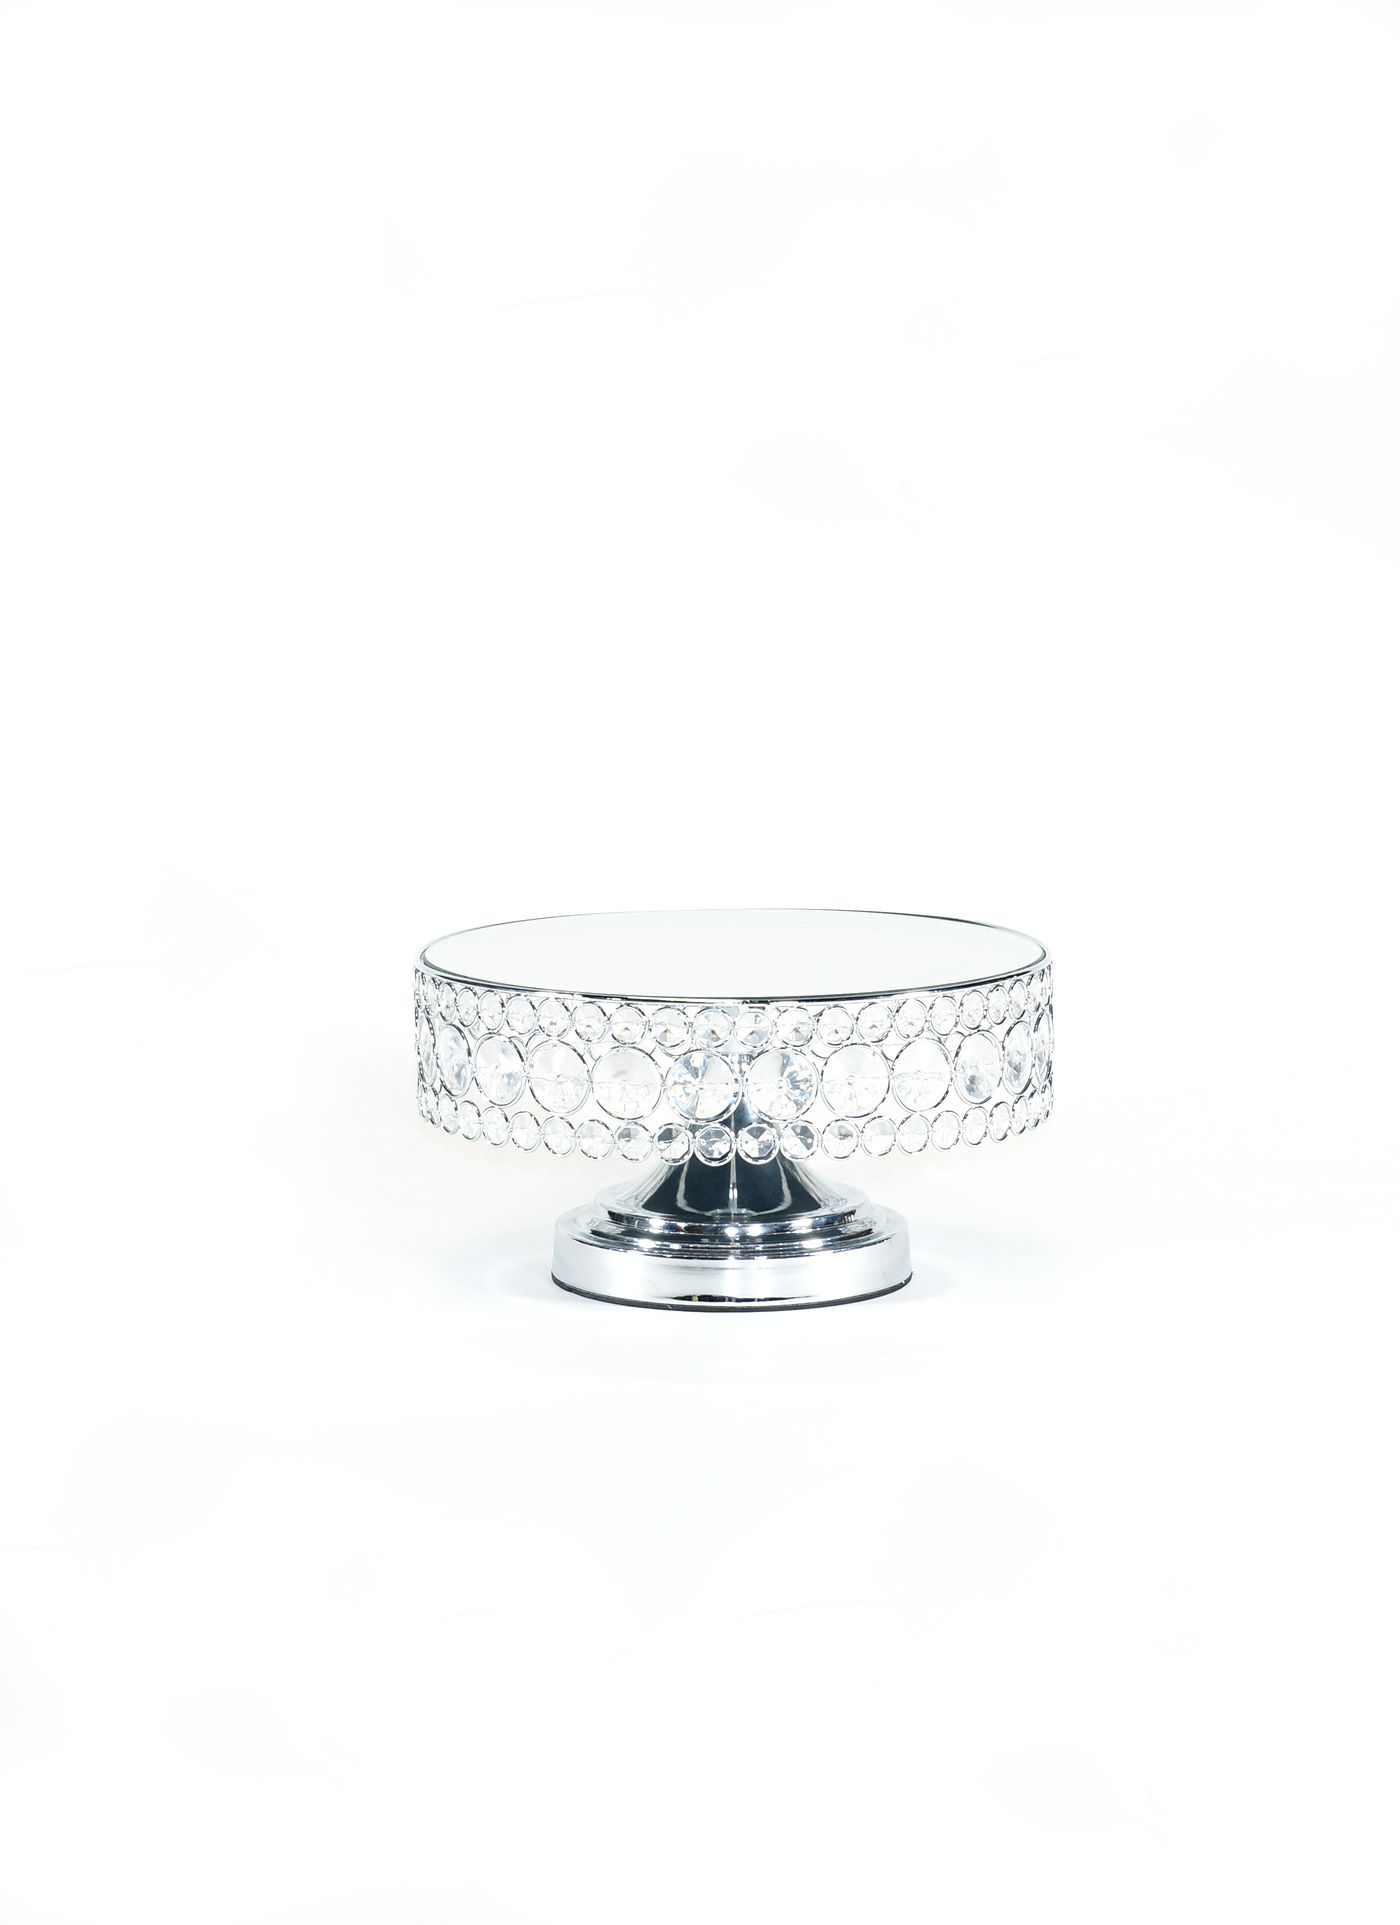 41++ 14 inch cake stand white inspirations